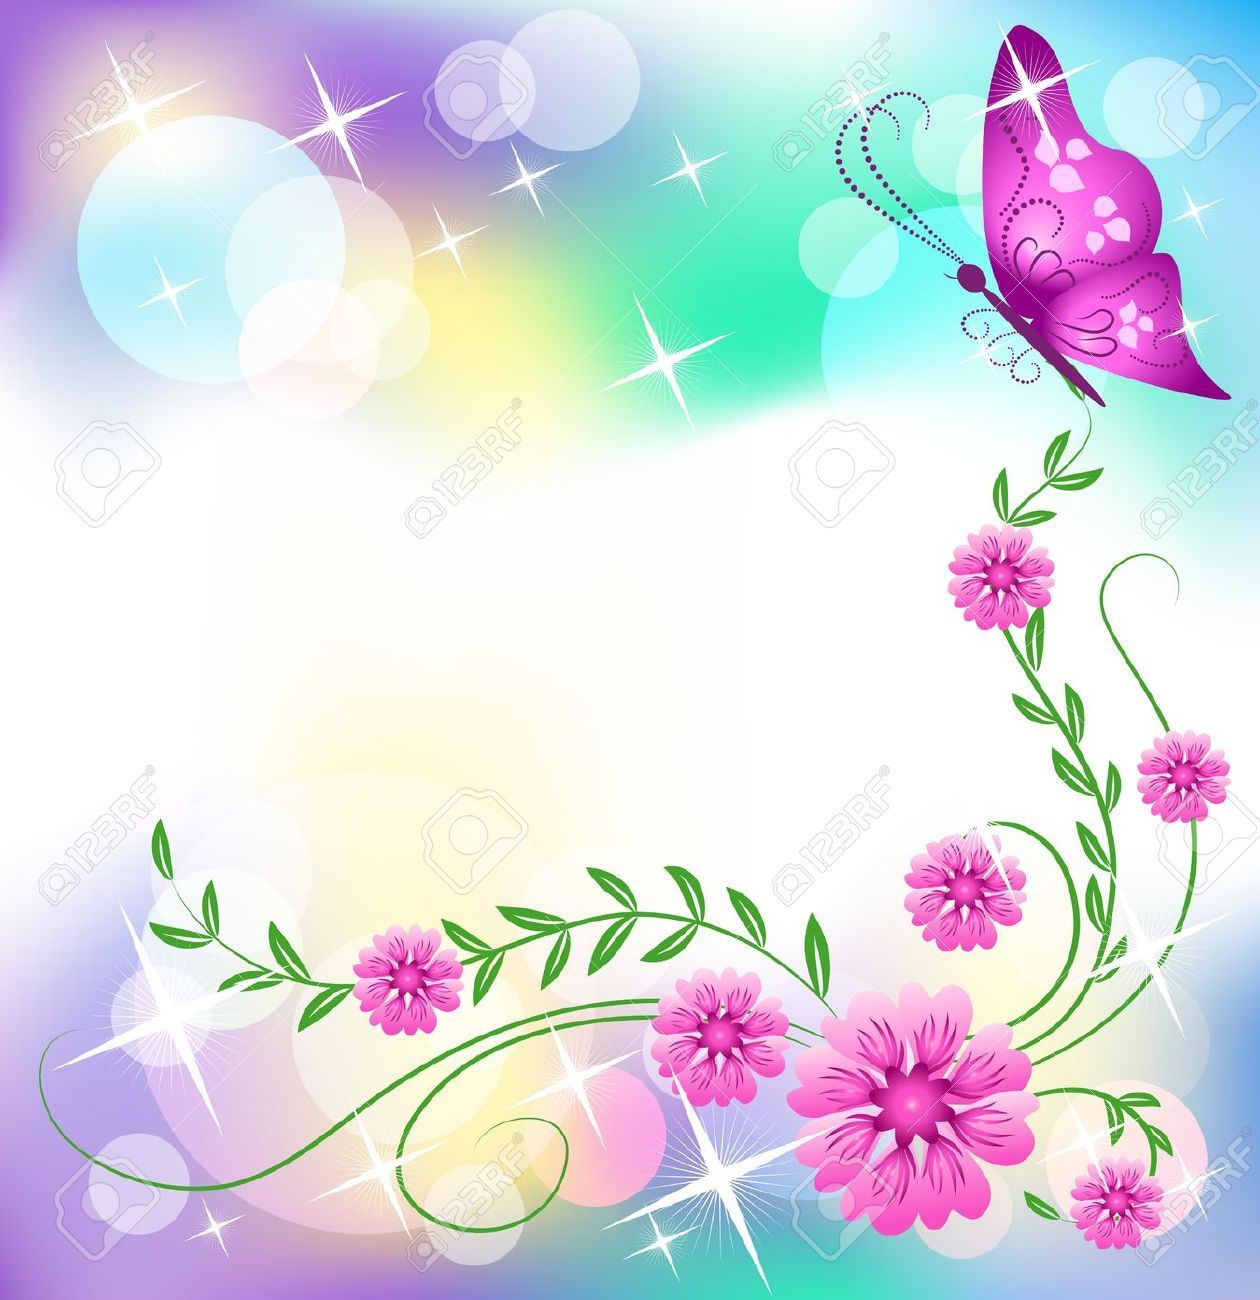 butterfly border clip ...Clipart Flowers And Butterflies Border